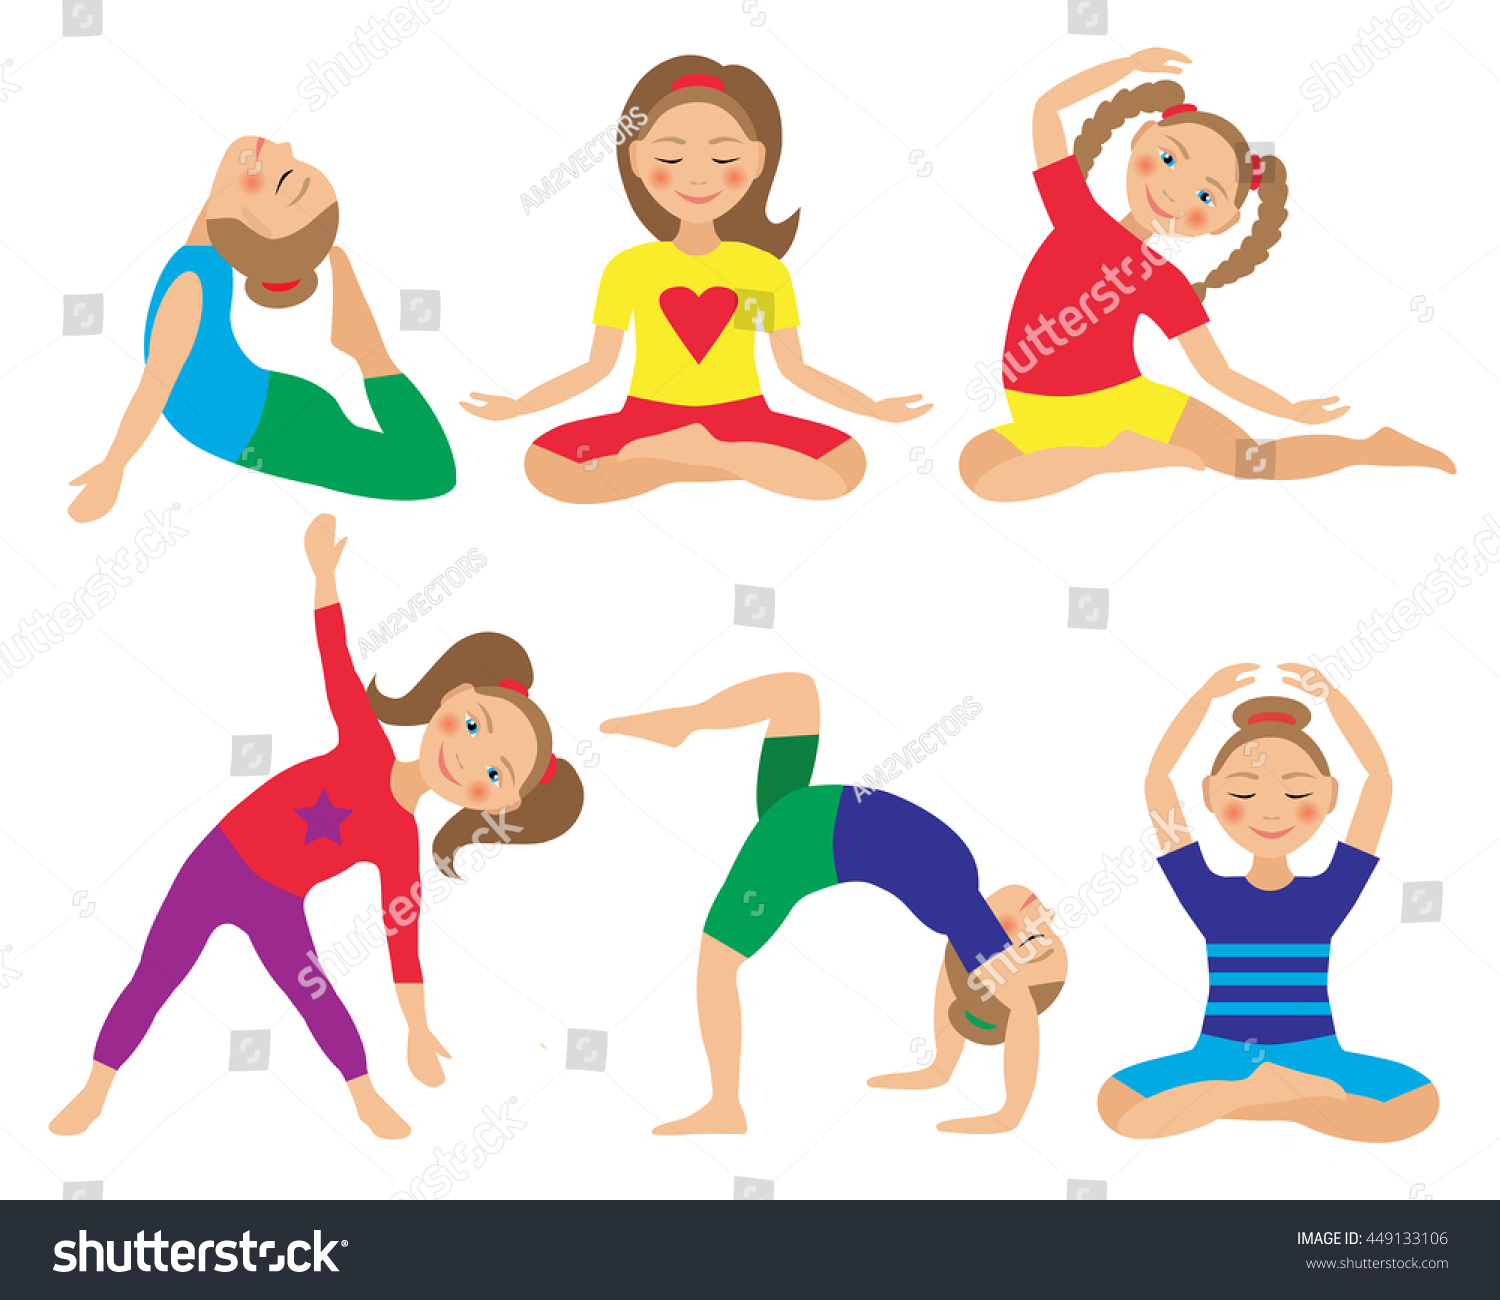 Kids Yoga Poses Vector Illustration Child Stock Vector Royalty Free 449133106